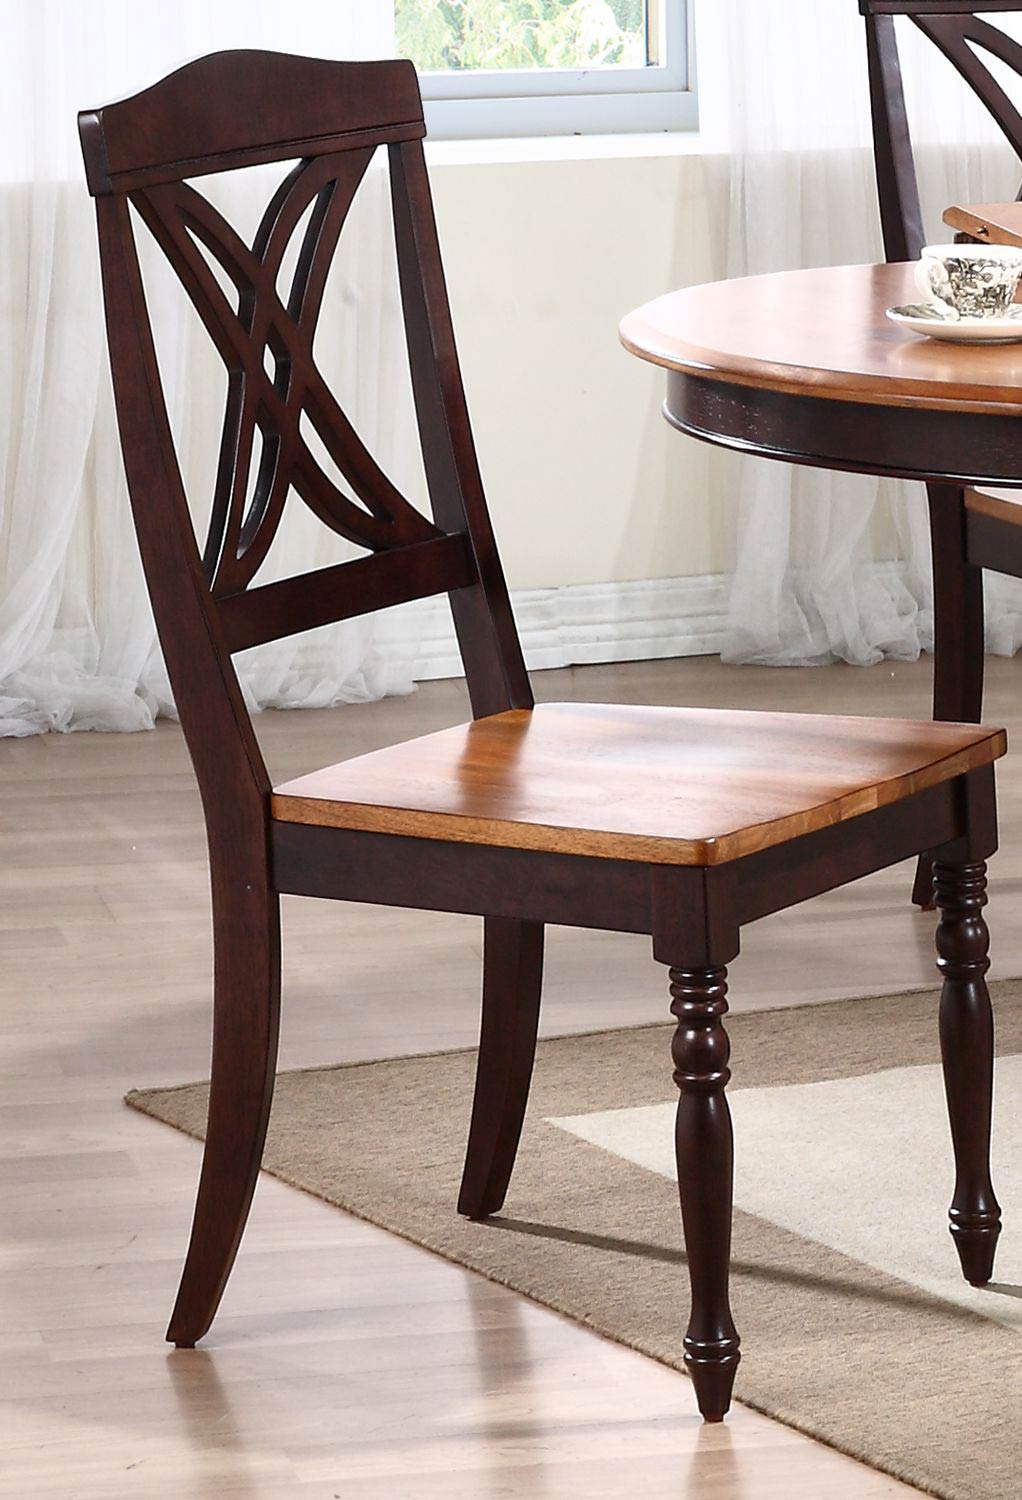 Iconic Furniture Butterfly Back Dining Chair - Whiskey/Mocha